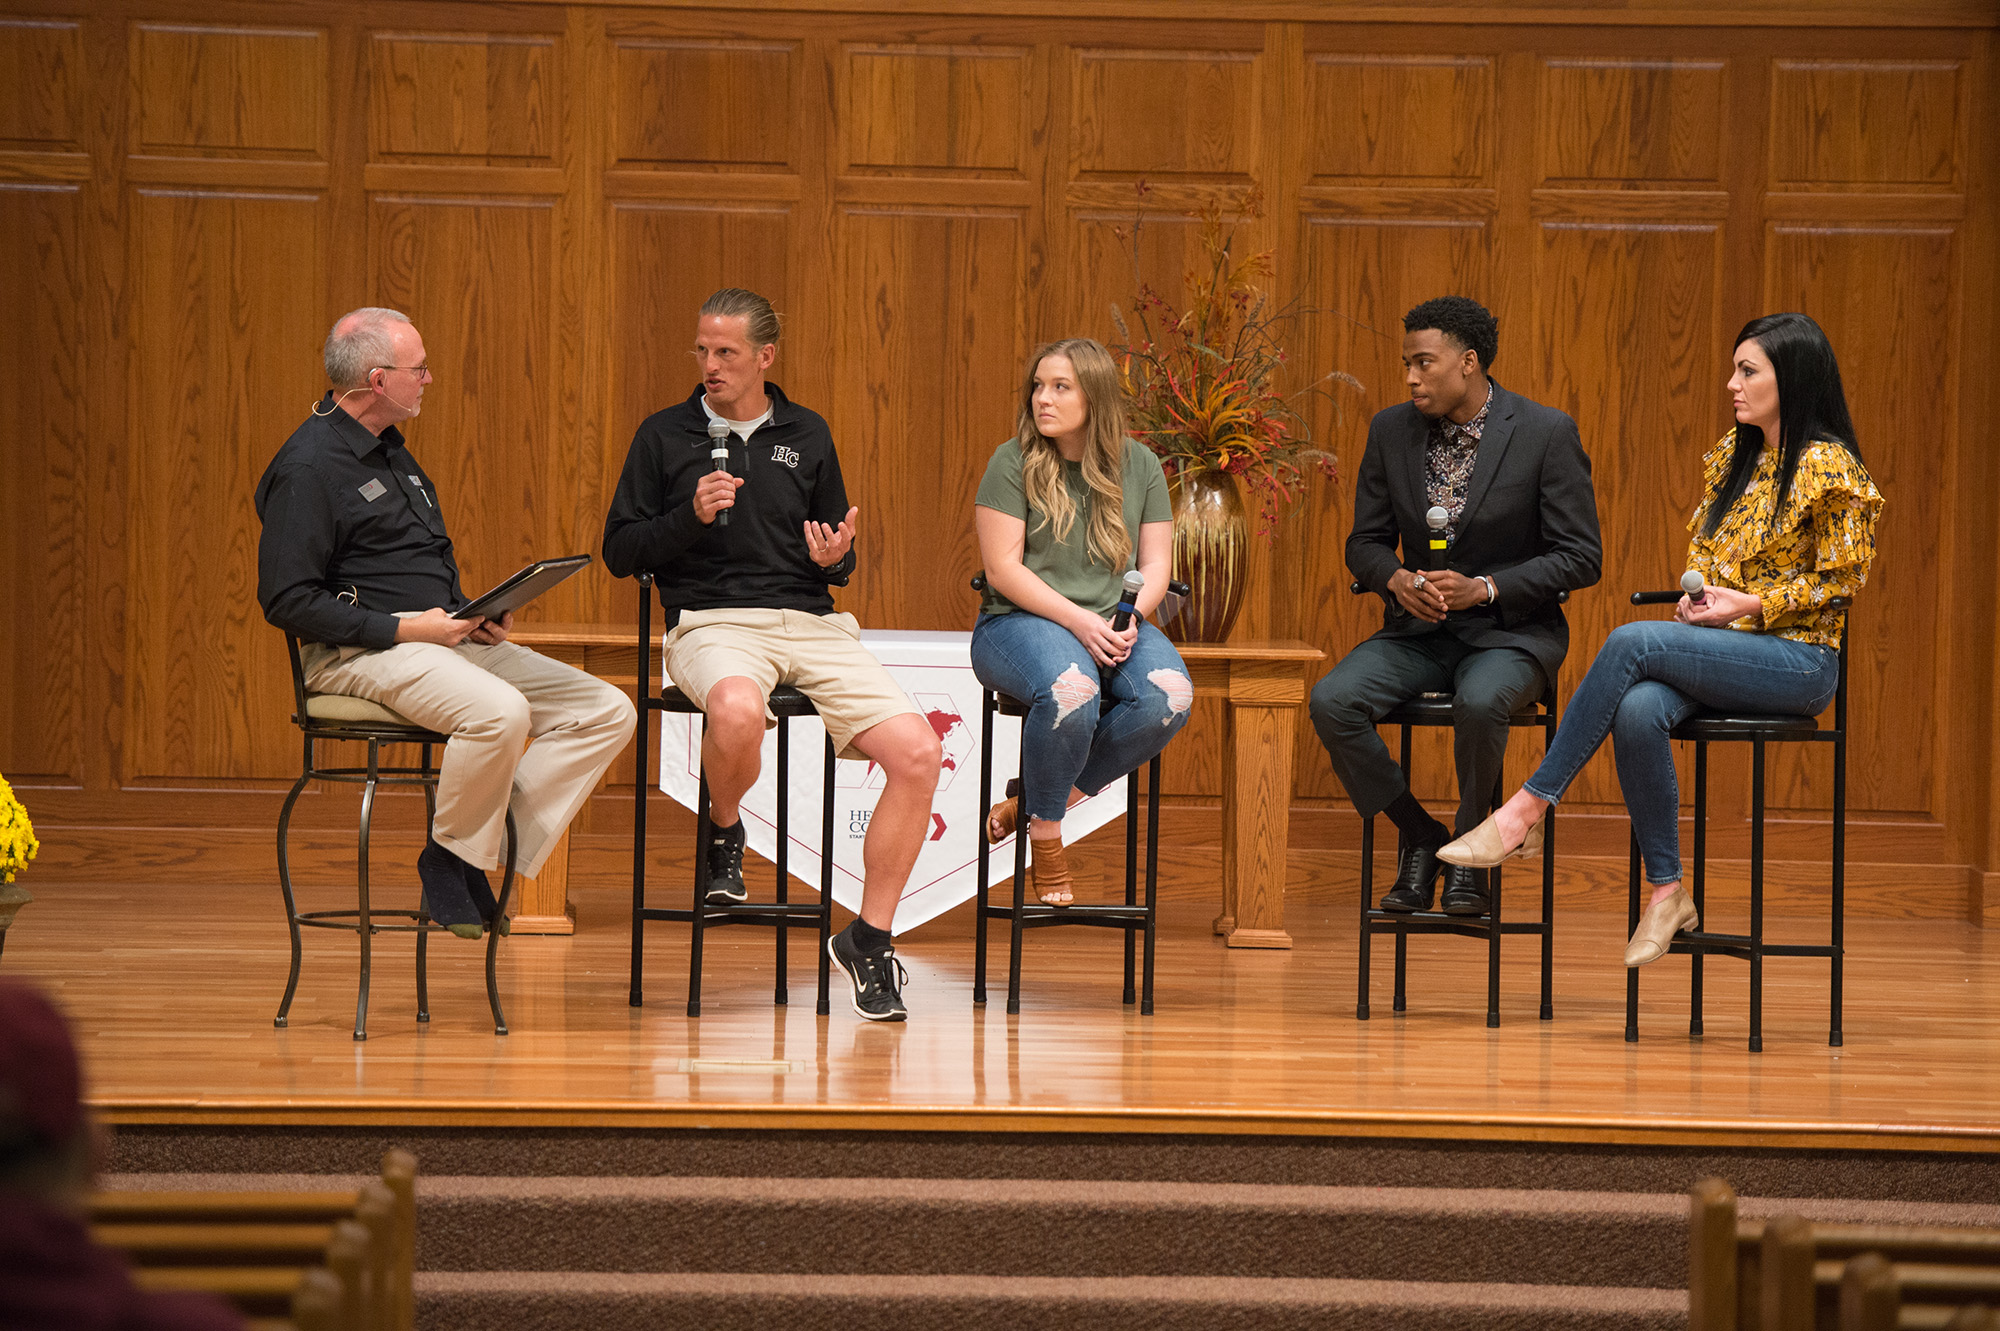 John Murray '81 moderates a panel of Lark alumni athletes including Andrew Sharp '99, Kymee Noll '15, Malcolm Mann '15 and Ashley (Kaufman) '07 Moore at a Go Everywhere seminar.